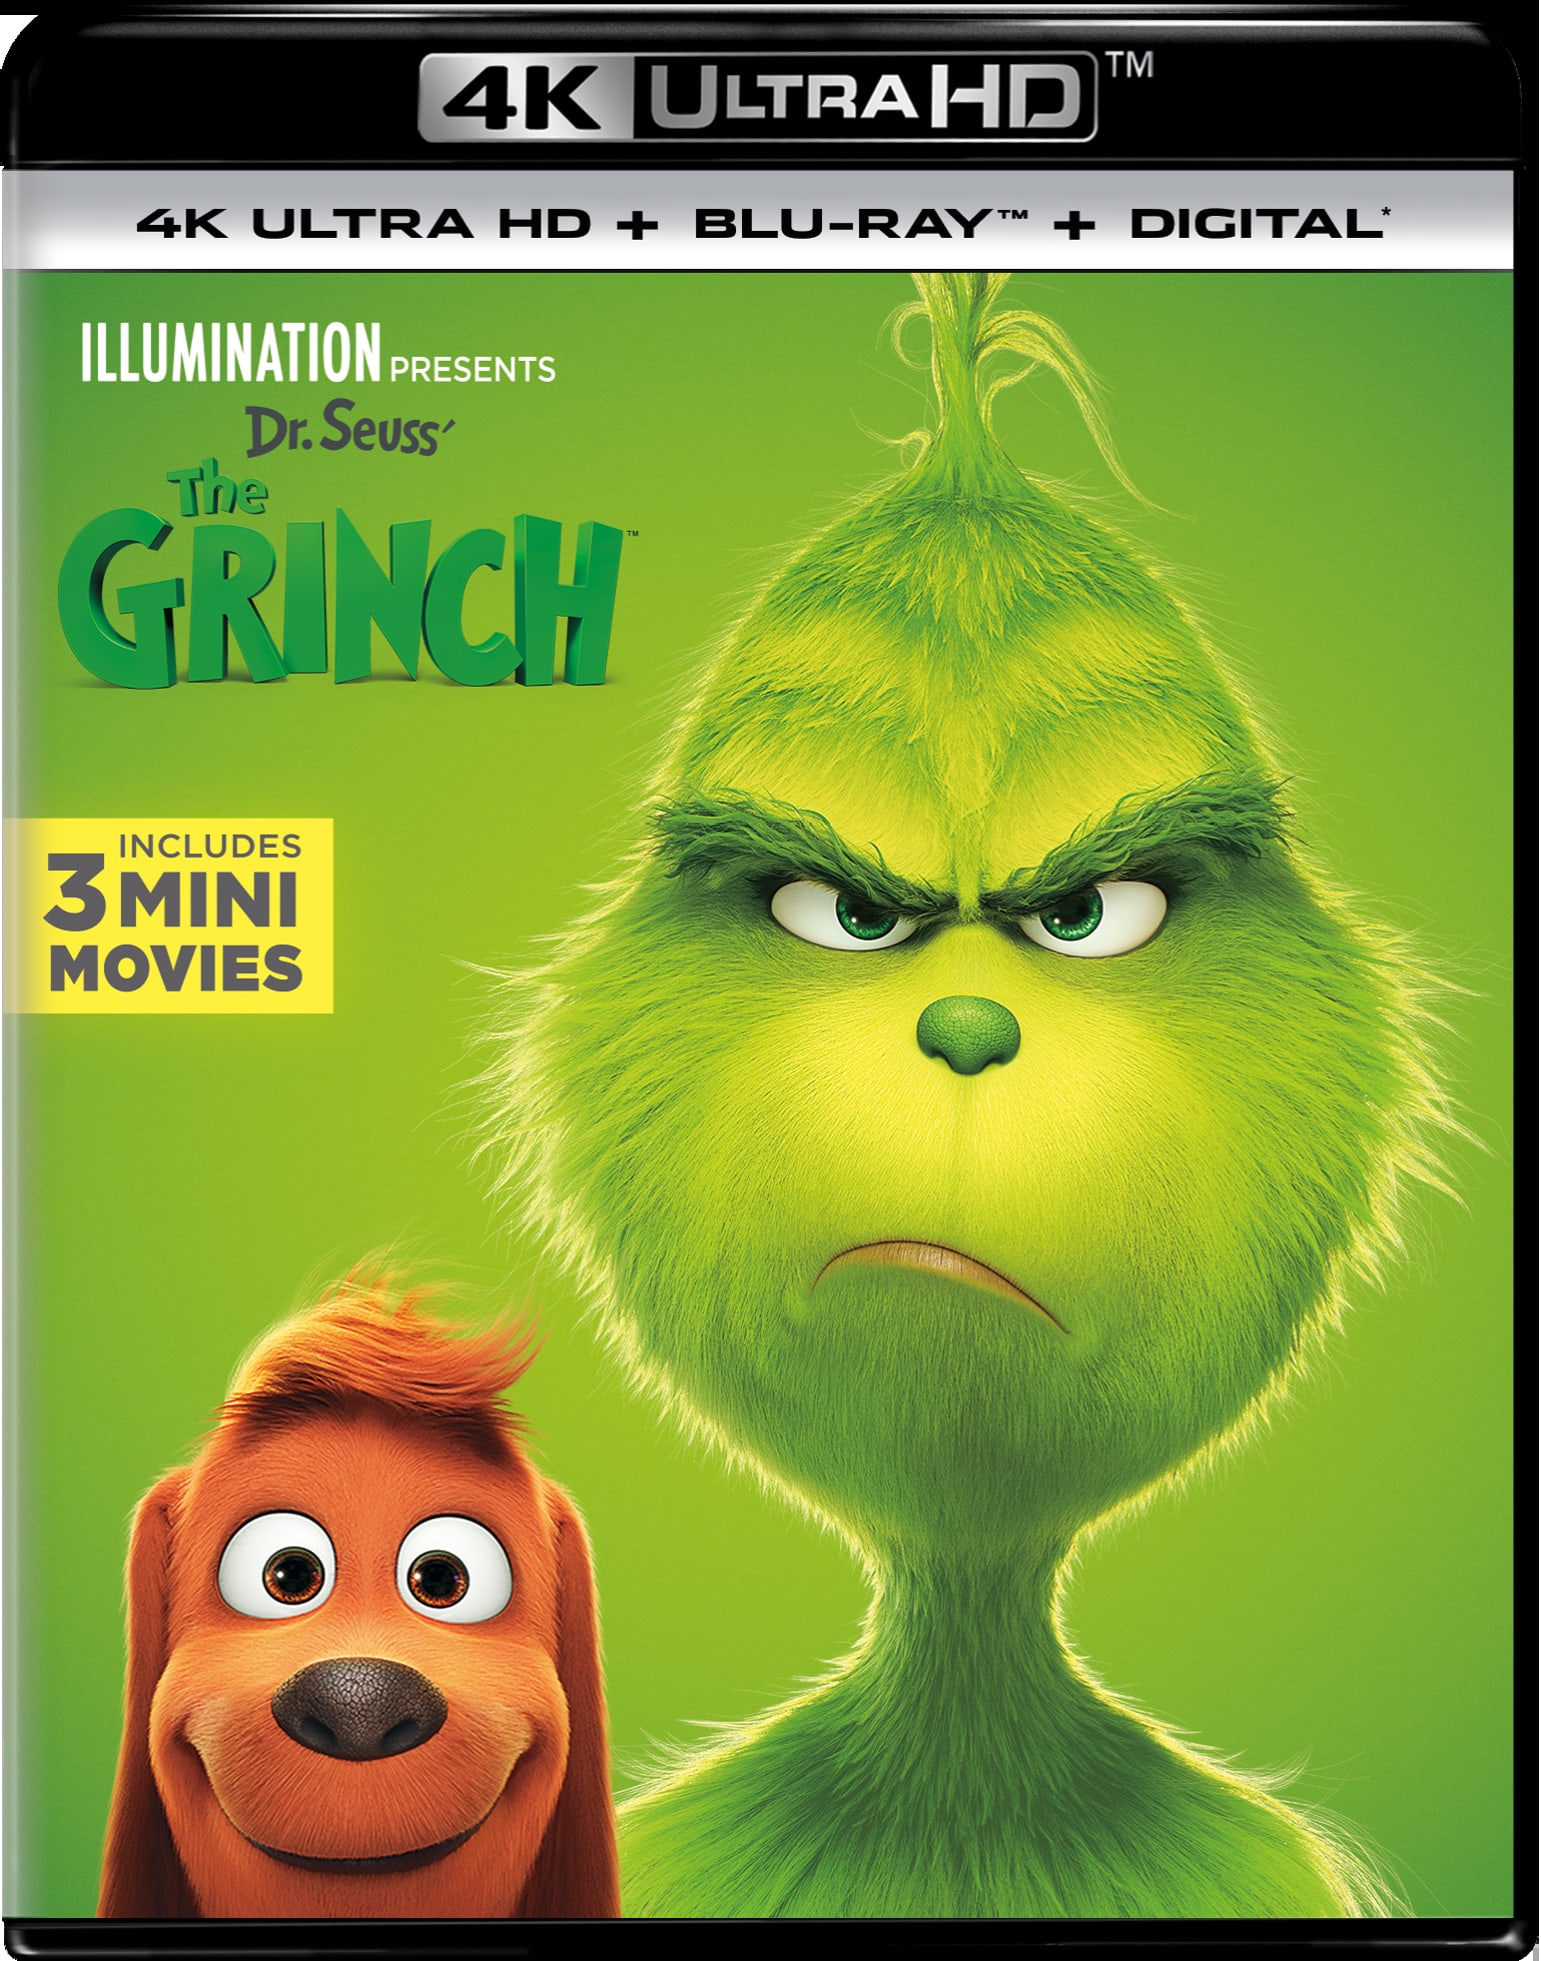 Illumination Presents: Dr. Seuss' The Grinch (4K Ultra HD + Digital) [UHD]